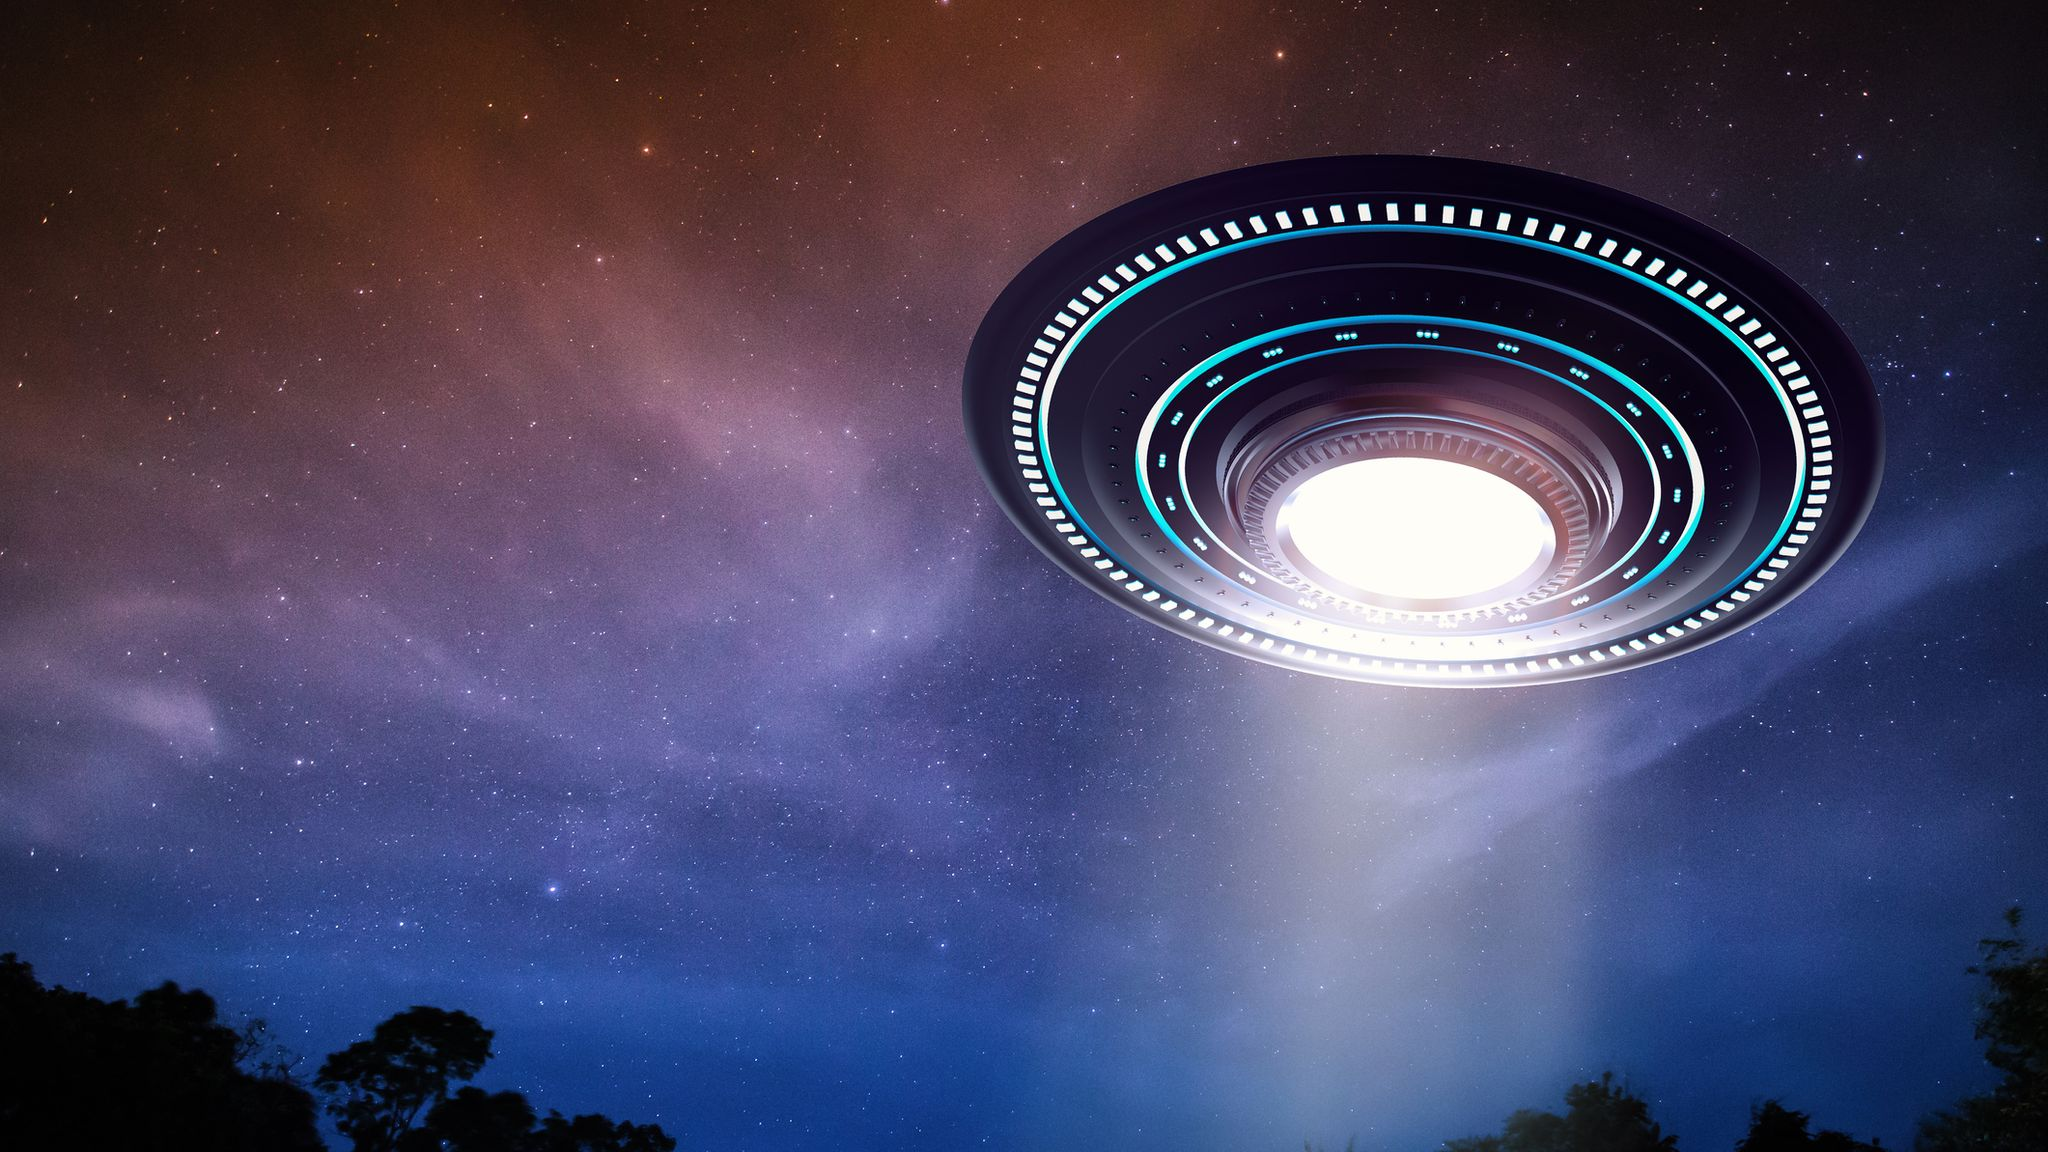 Forget Brexit - public referendum 'would support alien contact'   Science &  Tech News   Sky News